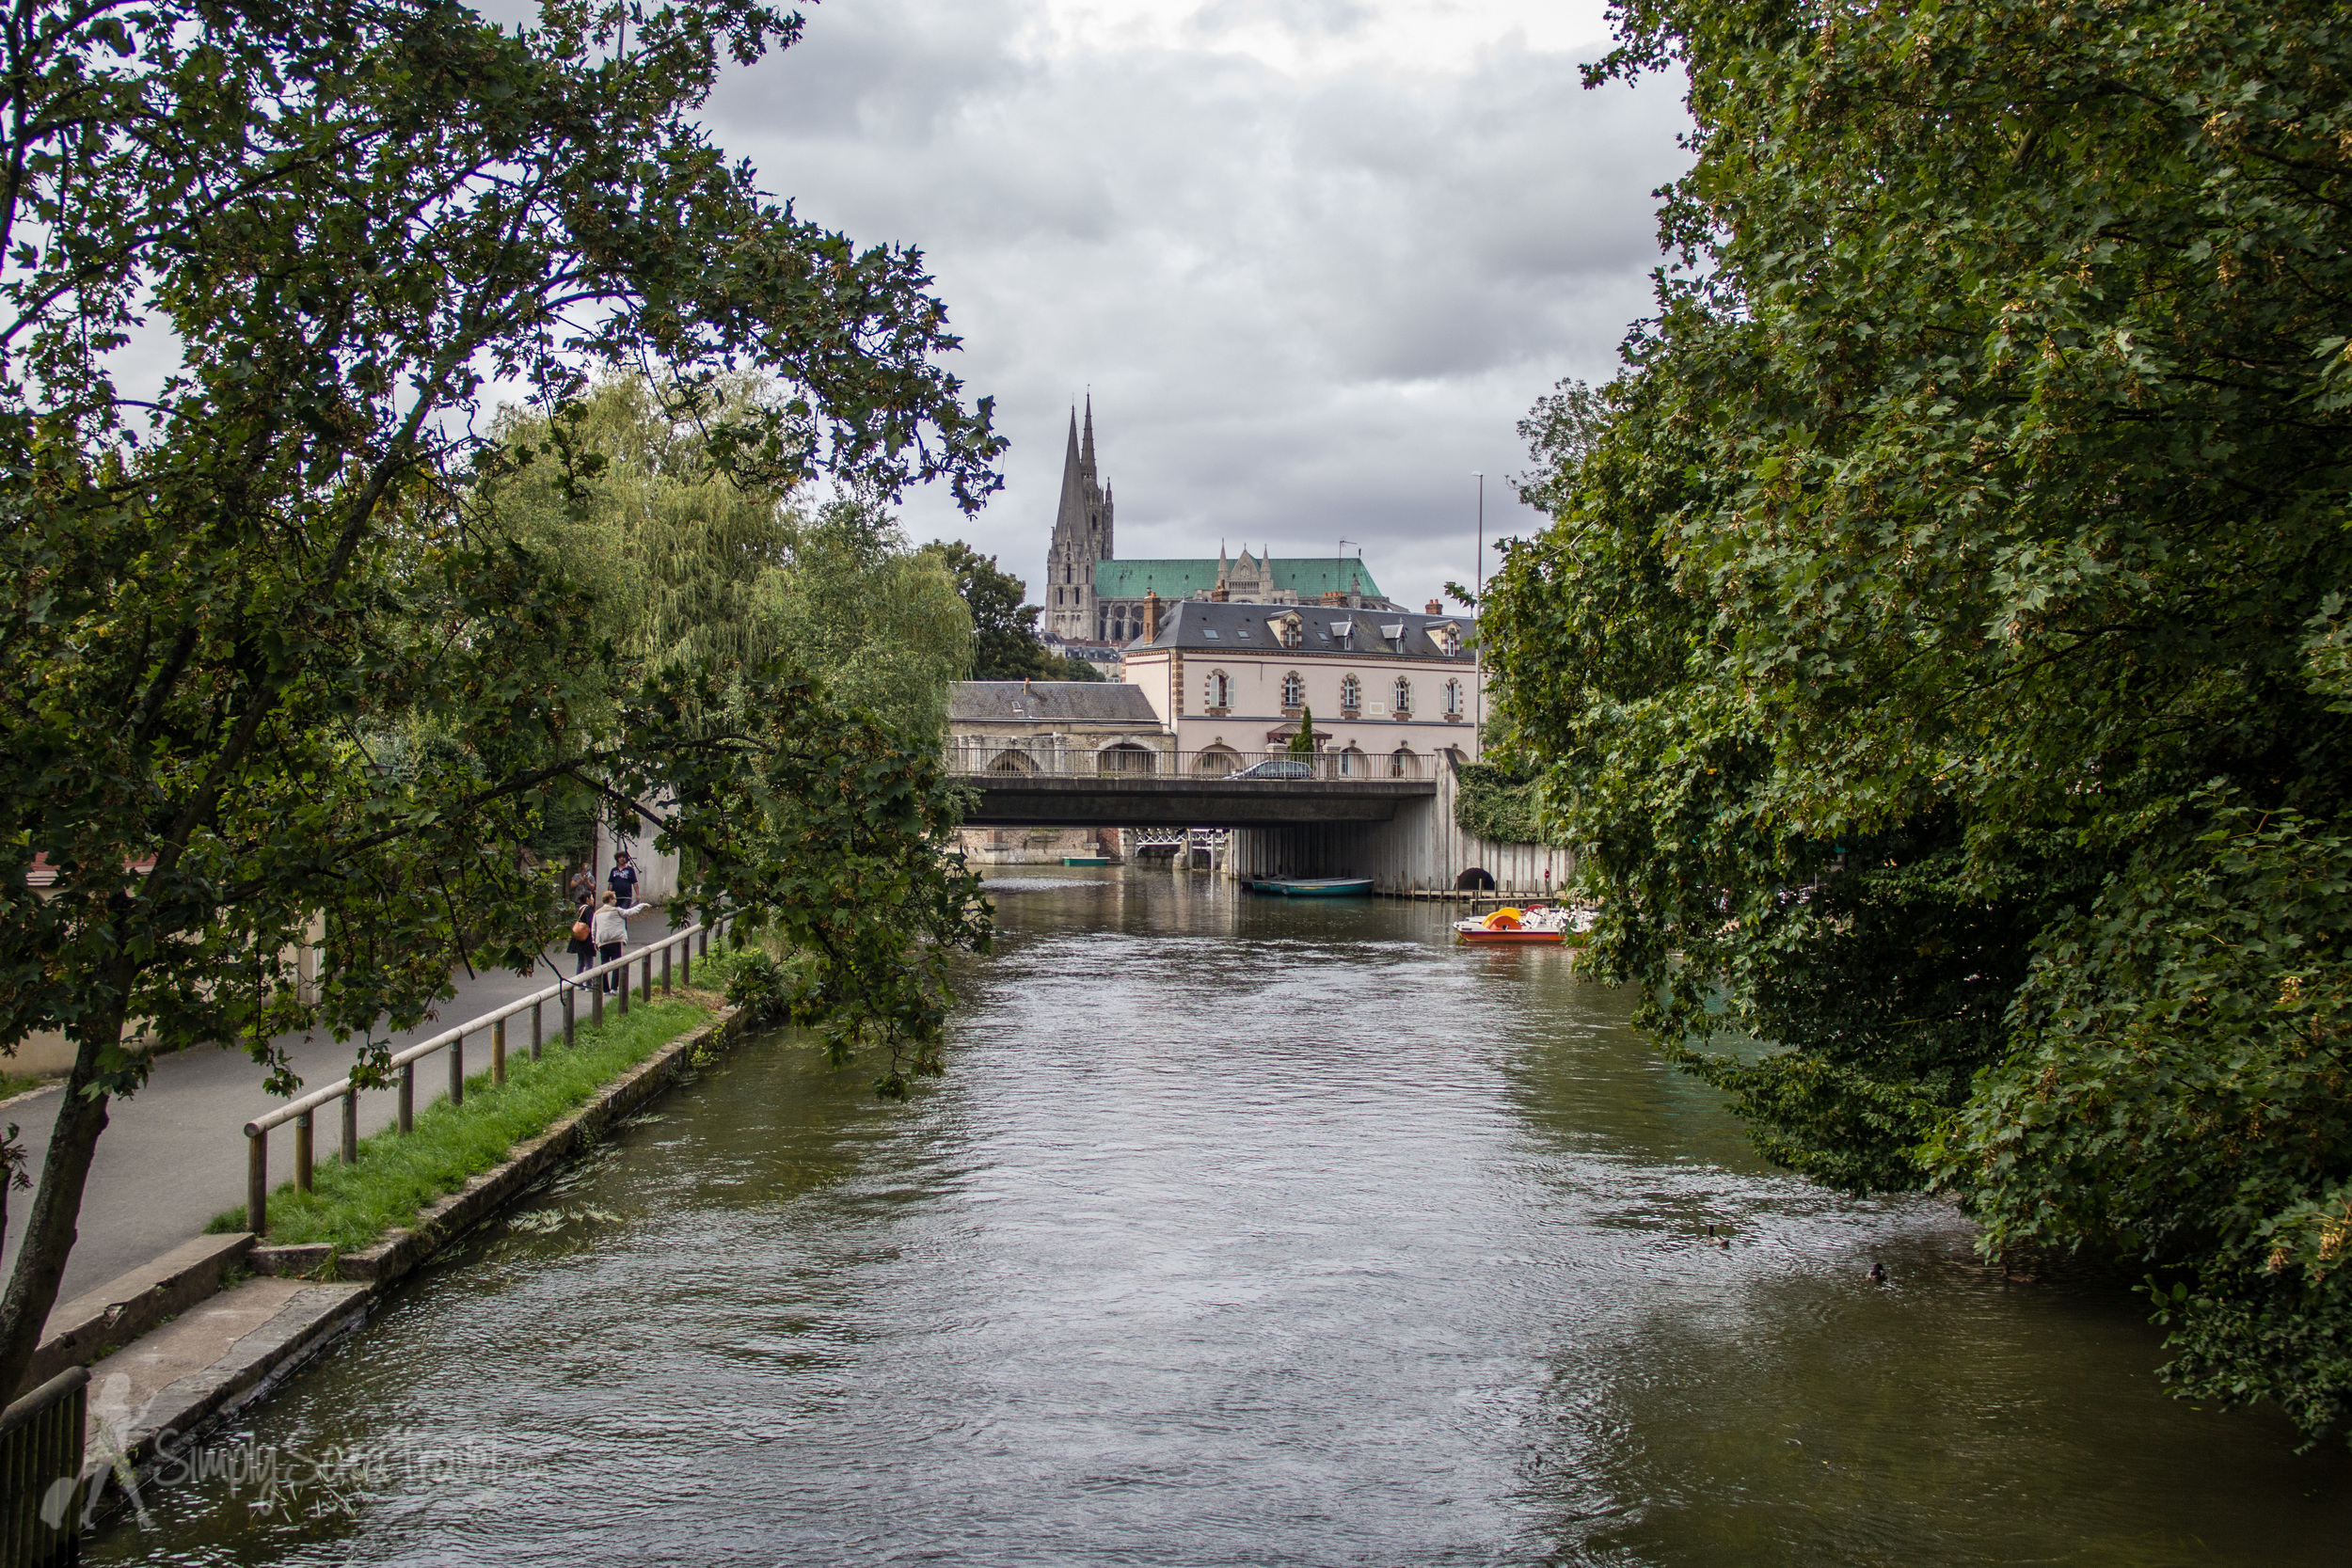 Chartres Cathedral as seen from the  Parc des Bords de I'Eure